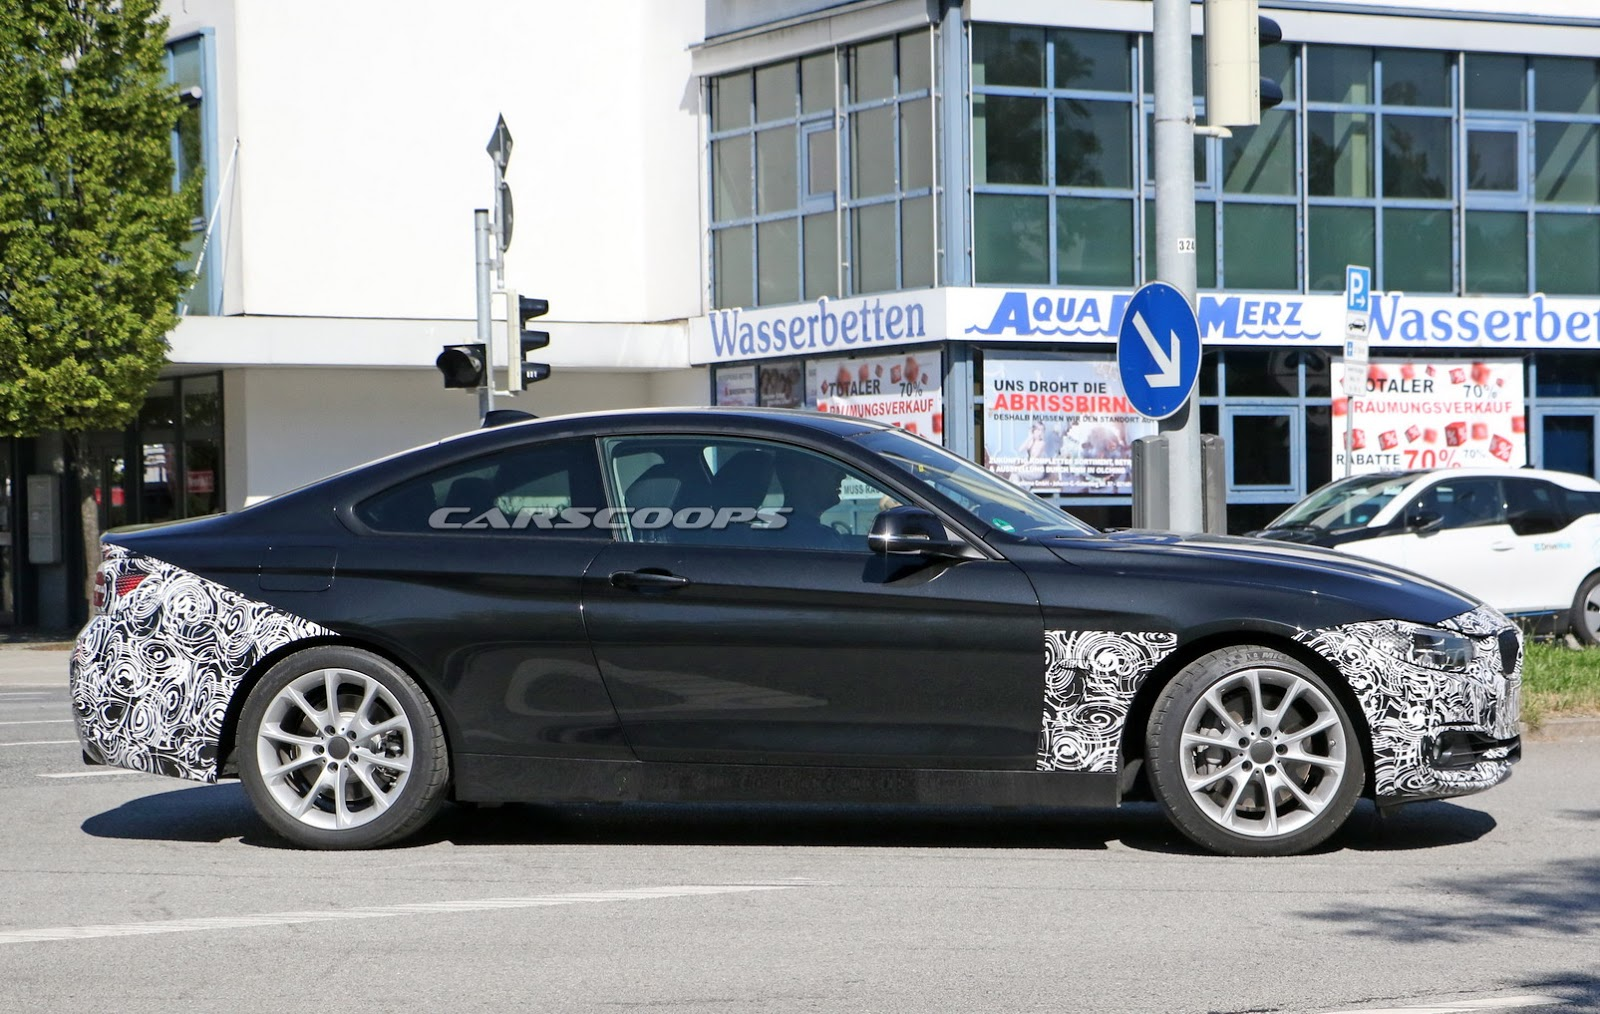 Spy Photos Camouflaged 2017 BMW 4 Series Coupe Runs Street Tests